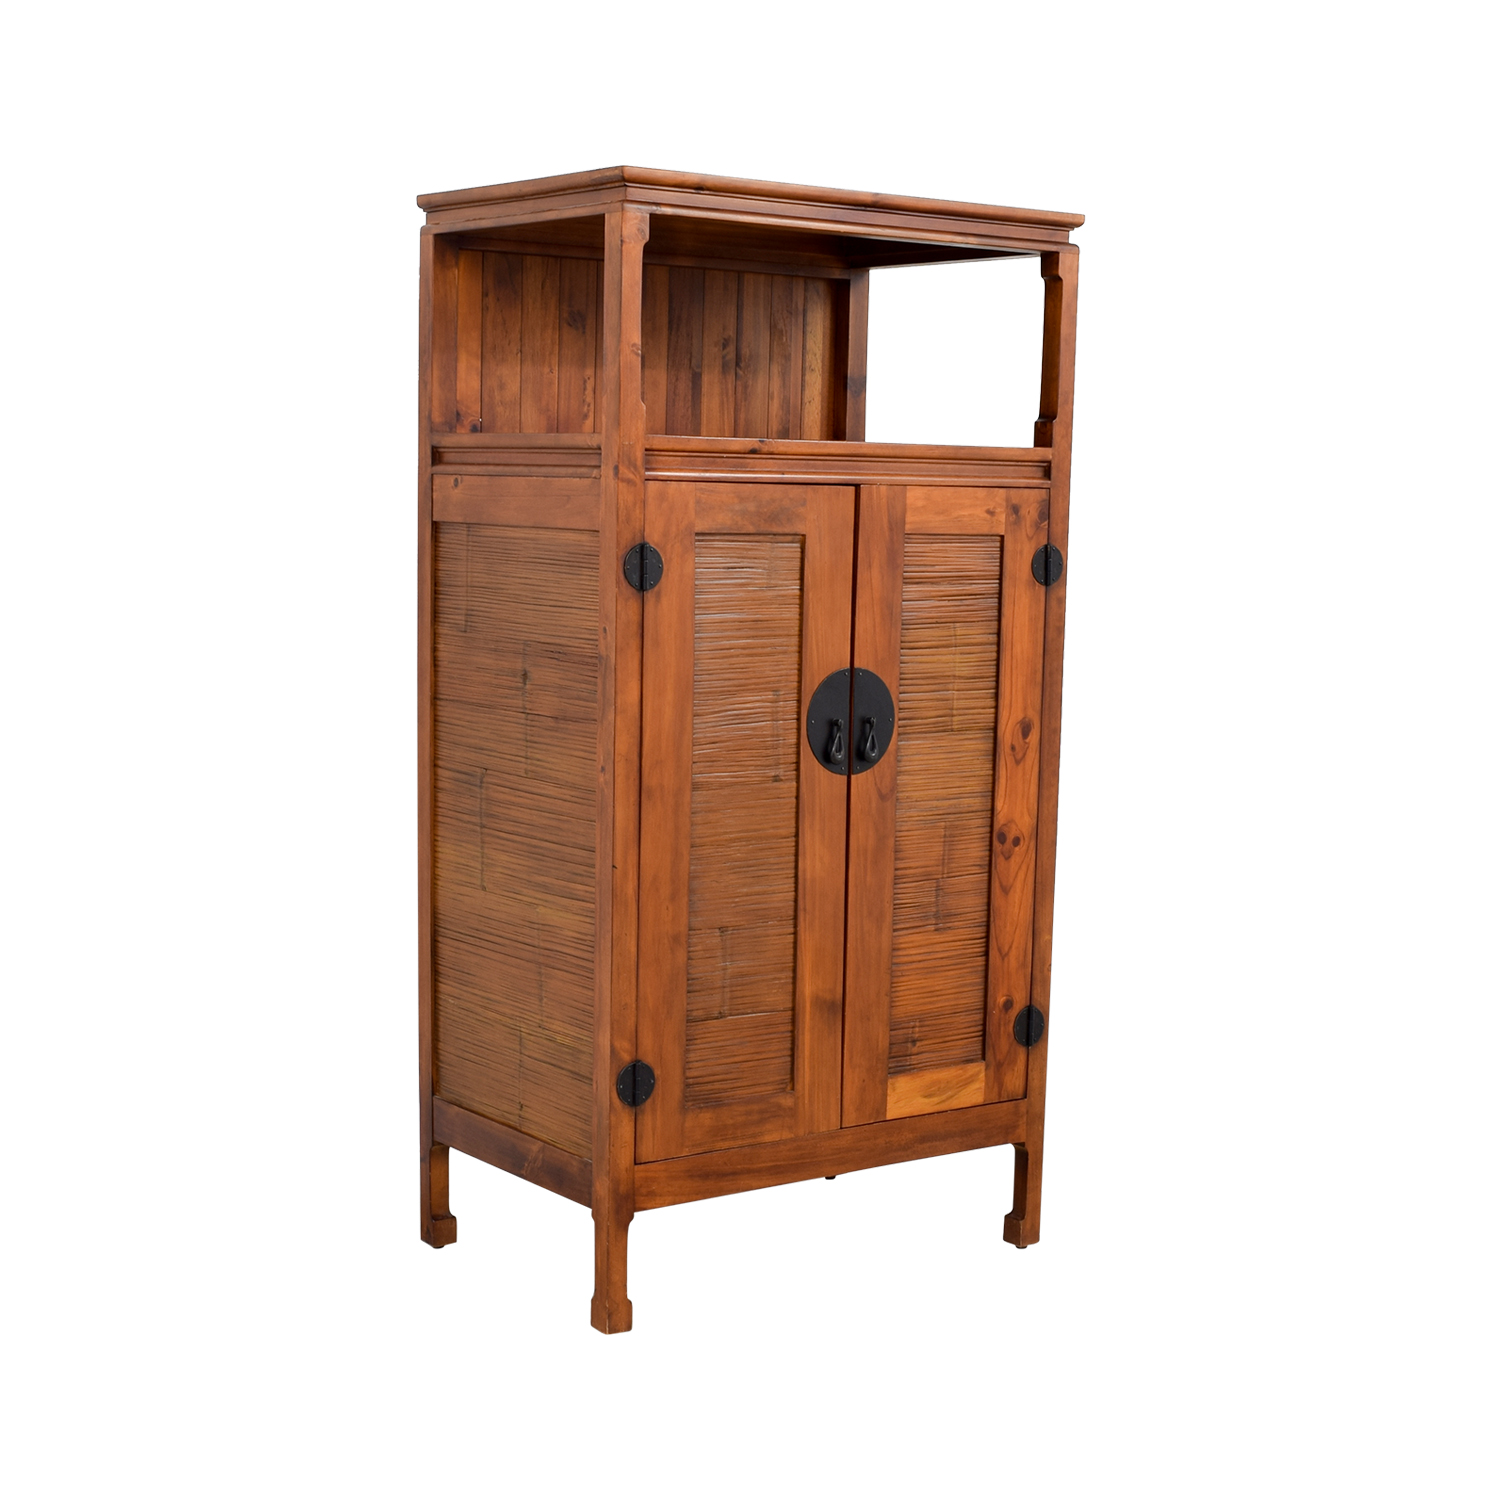 Pier 1 Imports Pier 1 Imports Asian Armoire or Entertainment Cabinet coupon